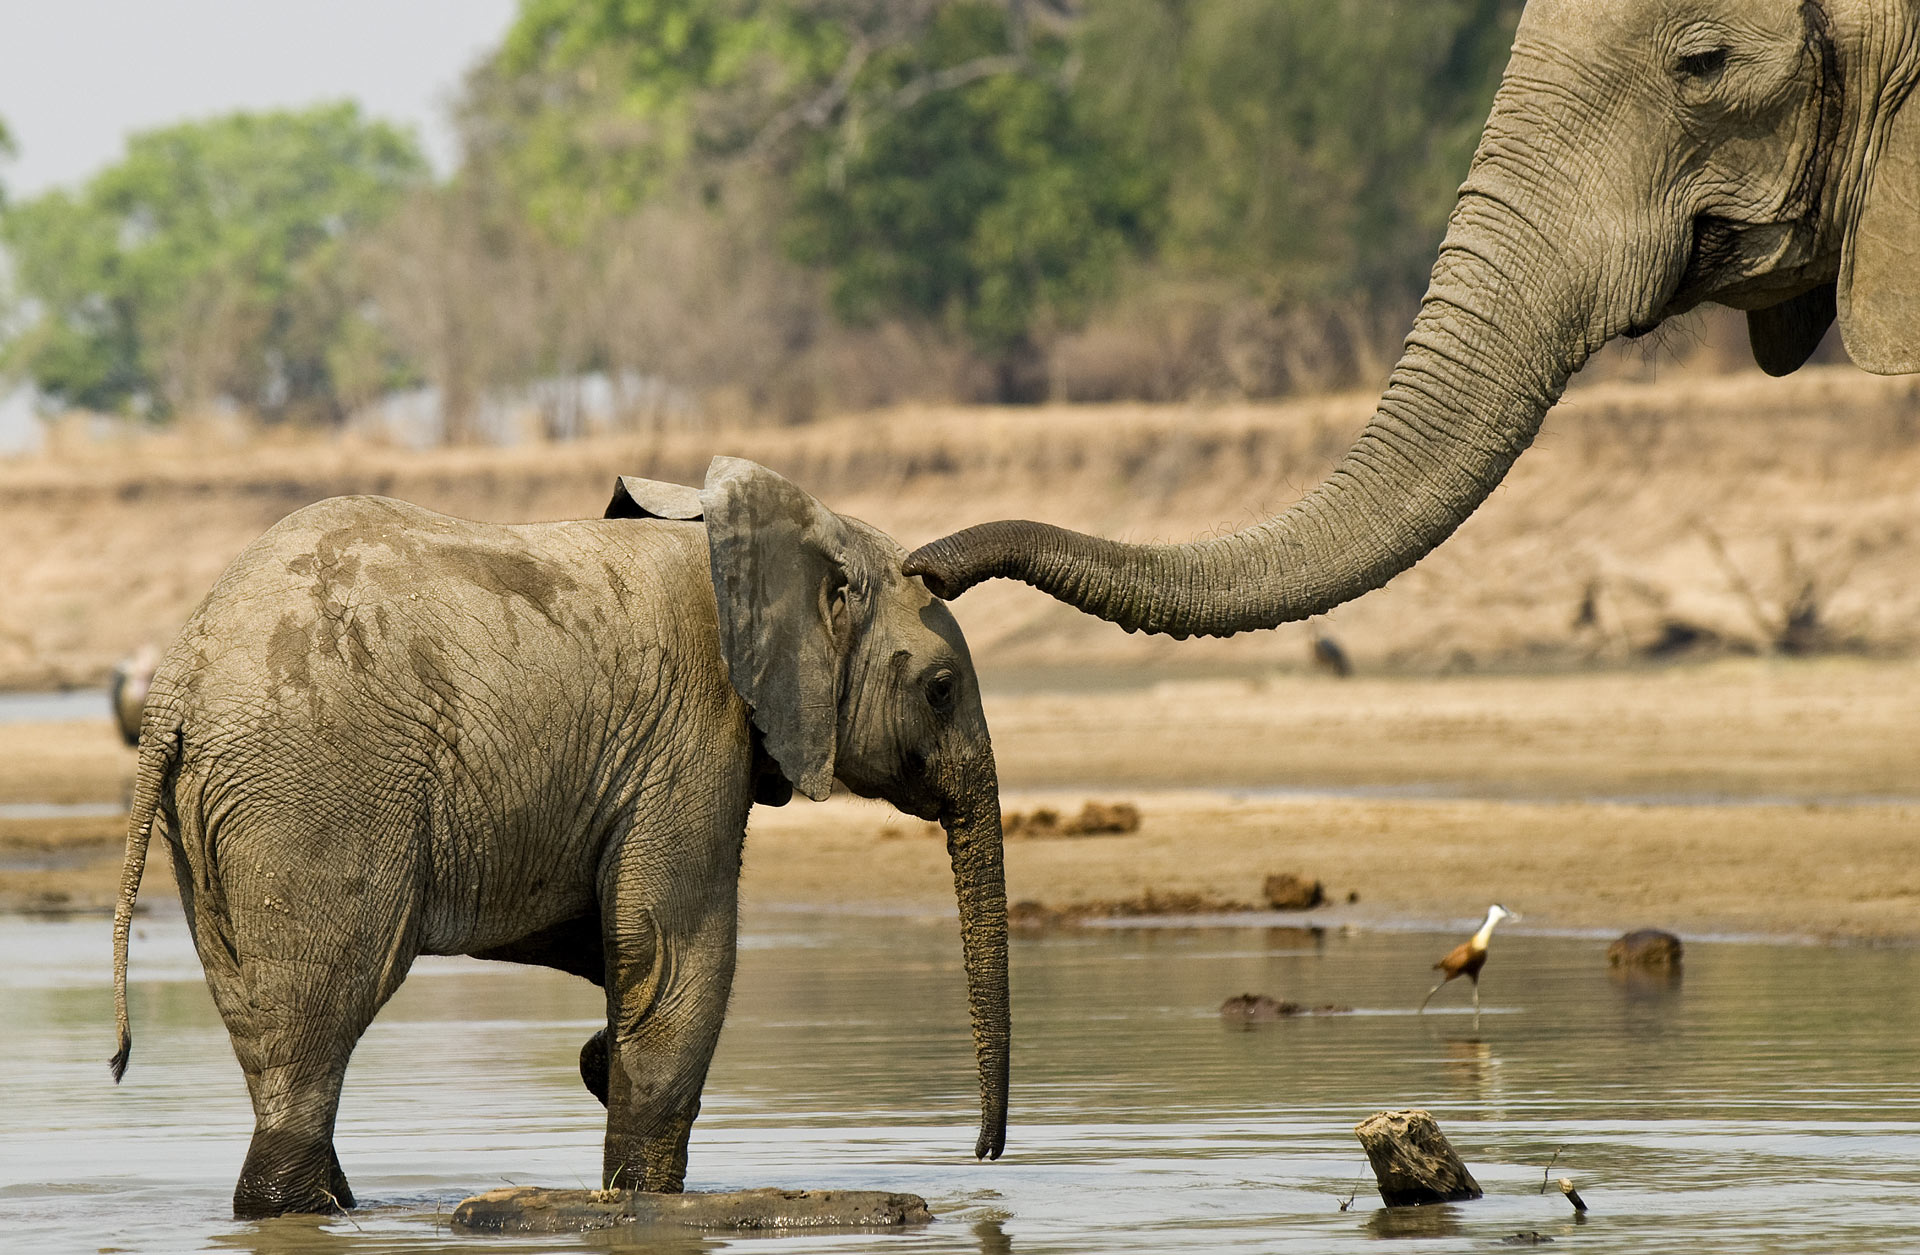 Two elephants bathing in the Luangwa River